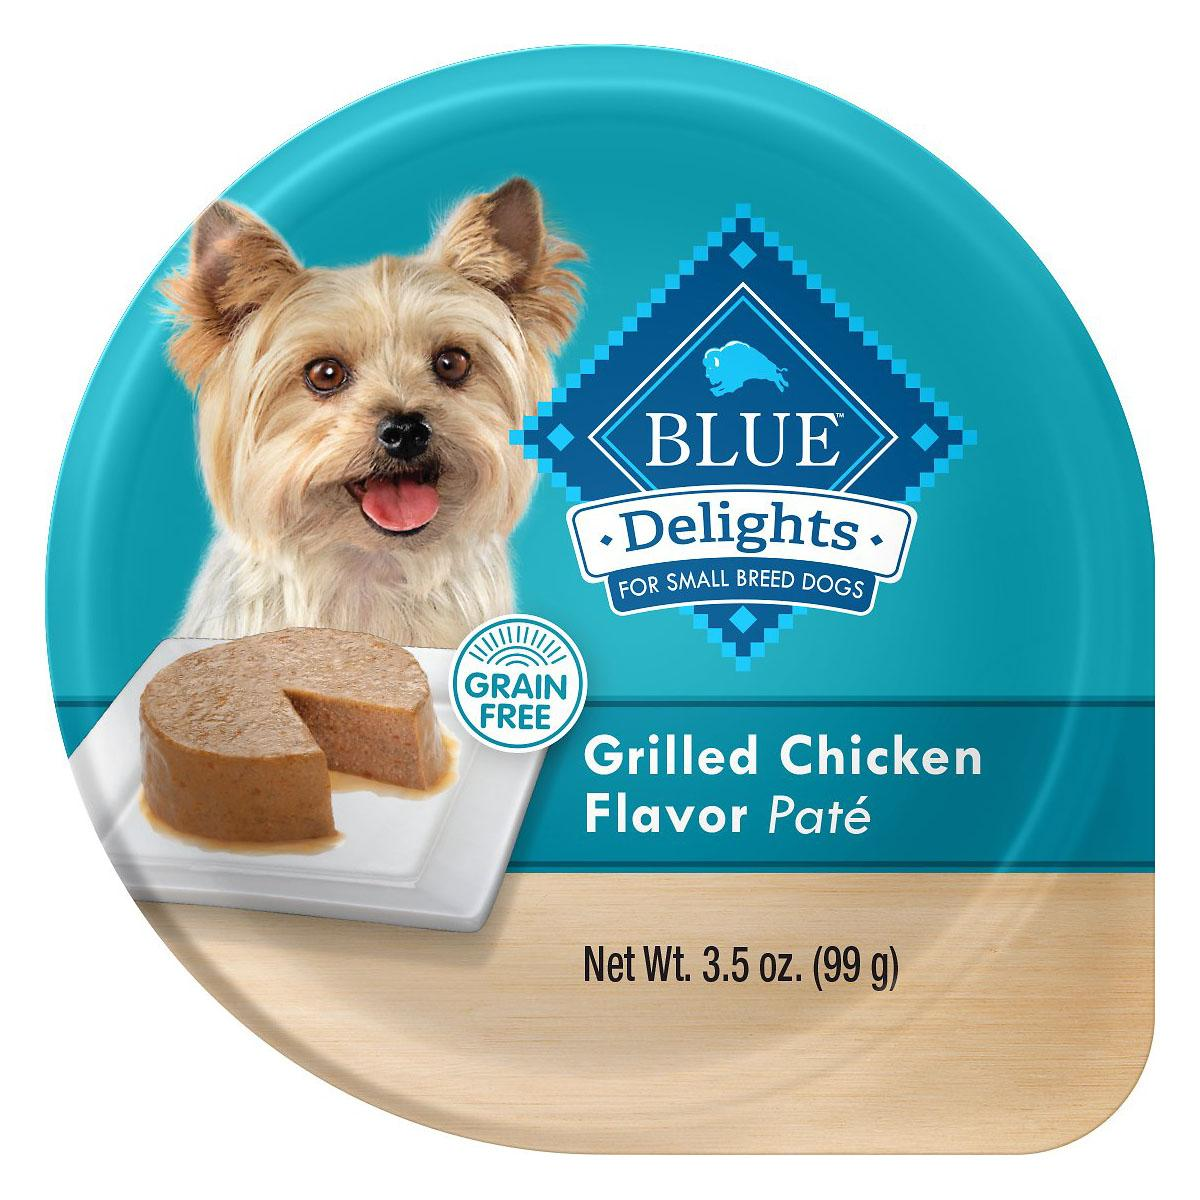 BaxterBoo – Blue Buffalo Divine Delights Small Breed Dog Food – Grilled Chicken